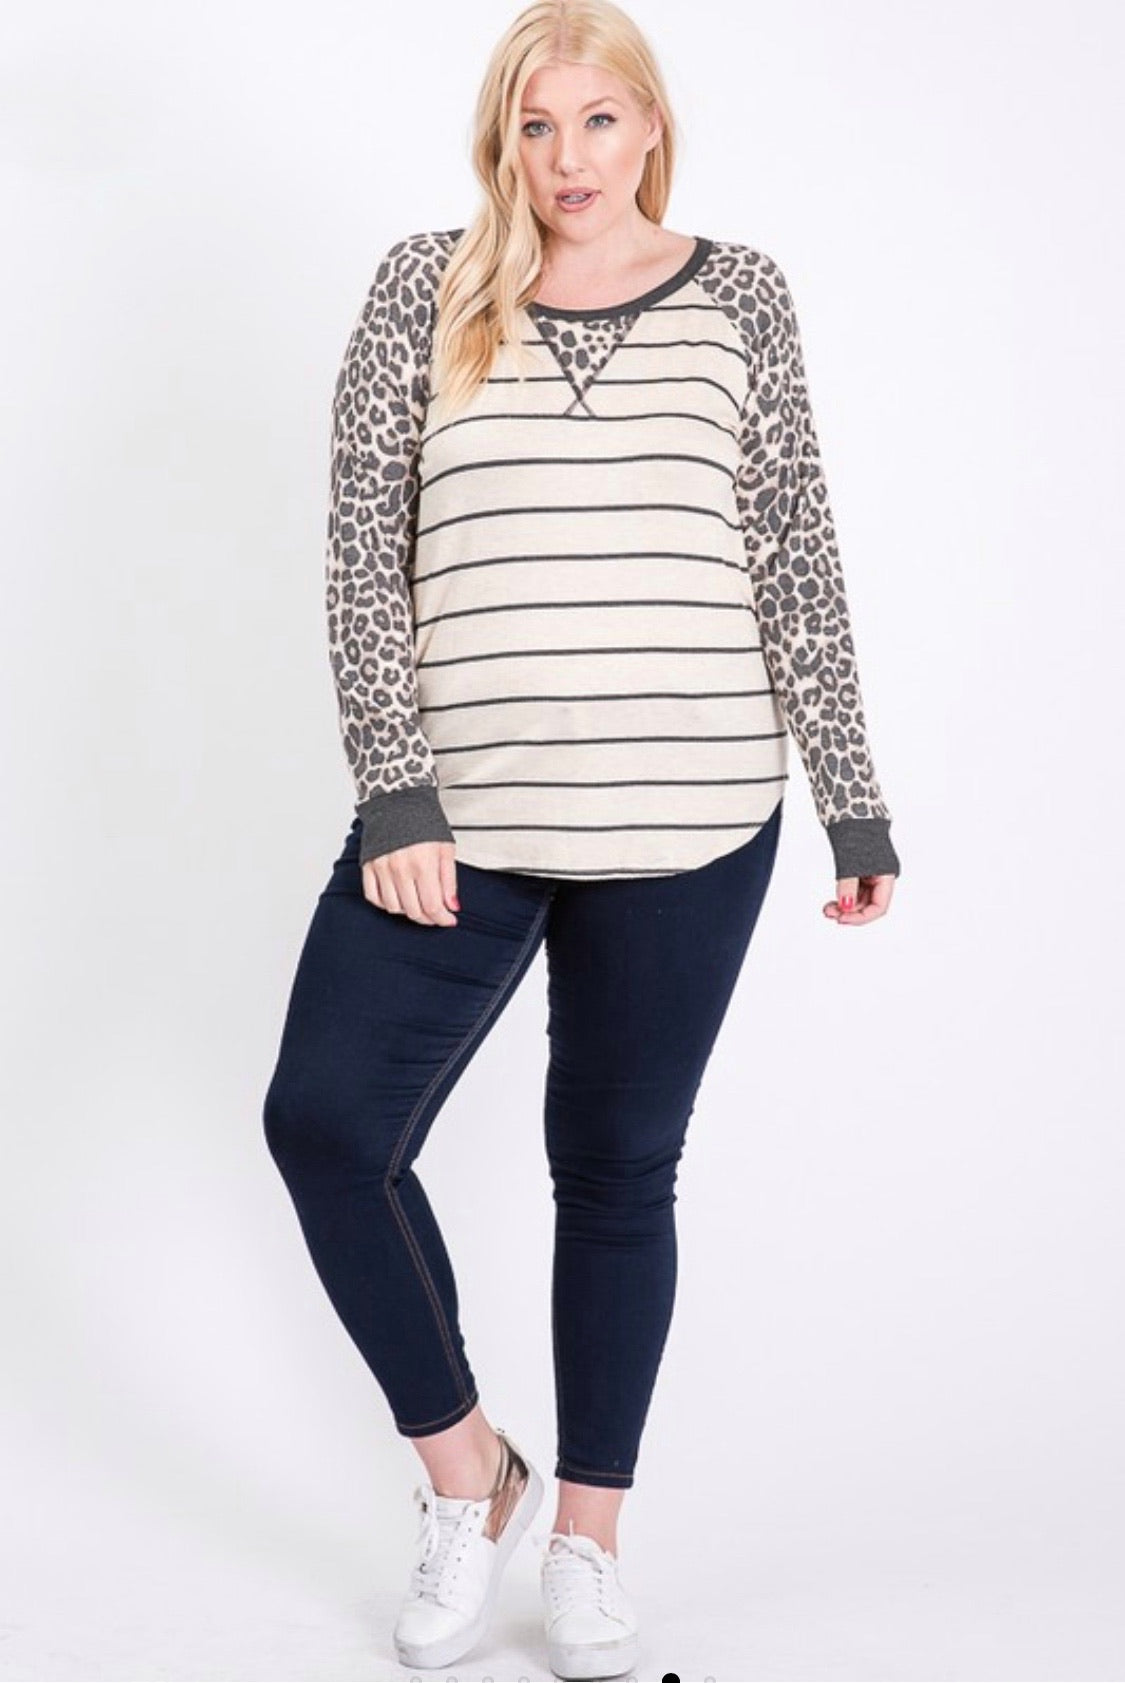 Oatmeal Striped Top with Animal Print Sleeves